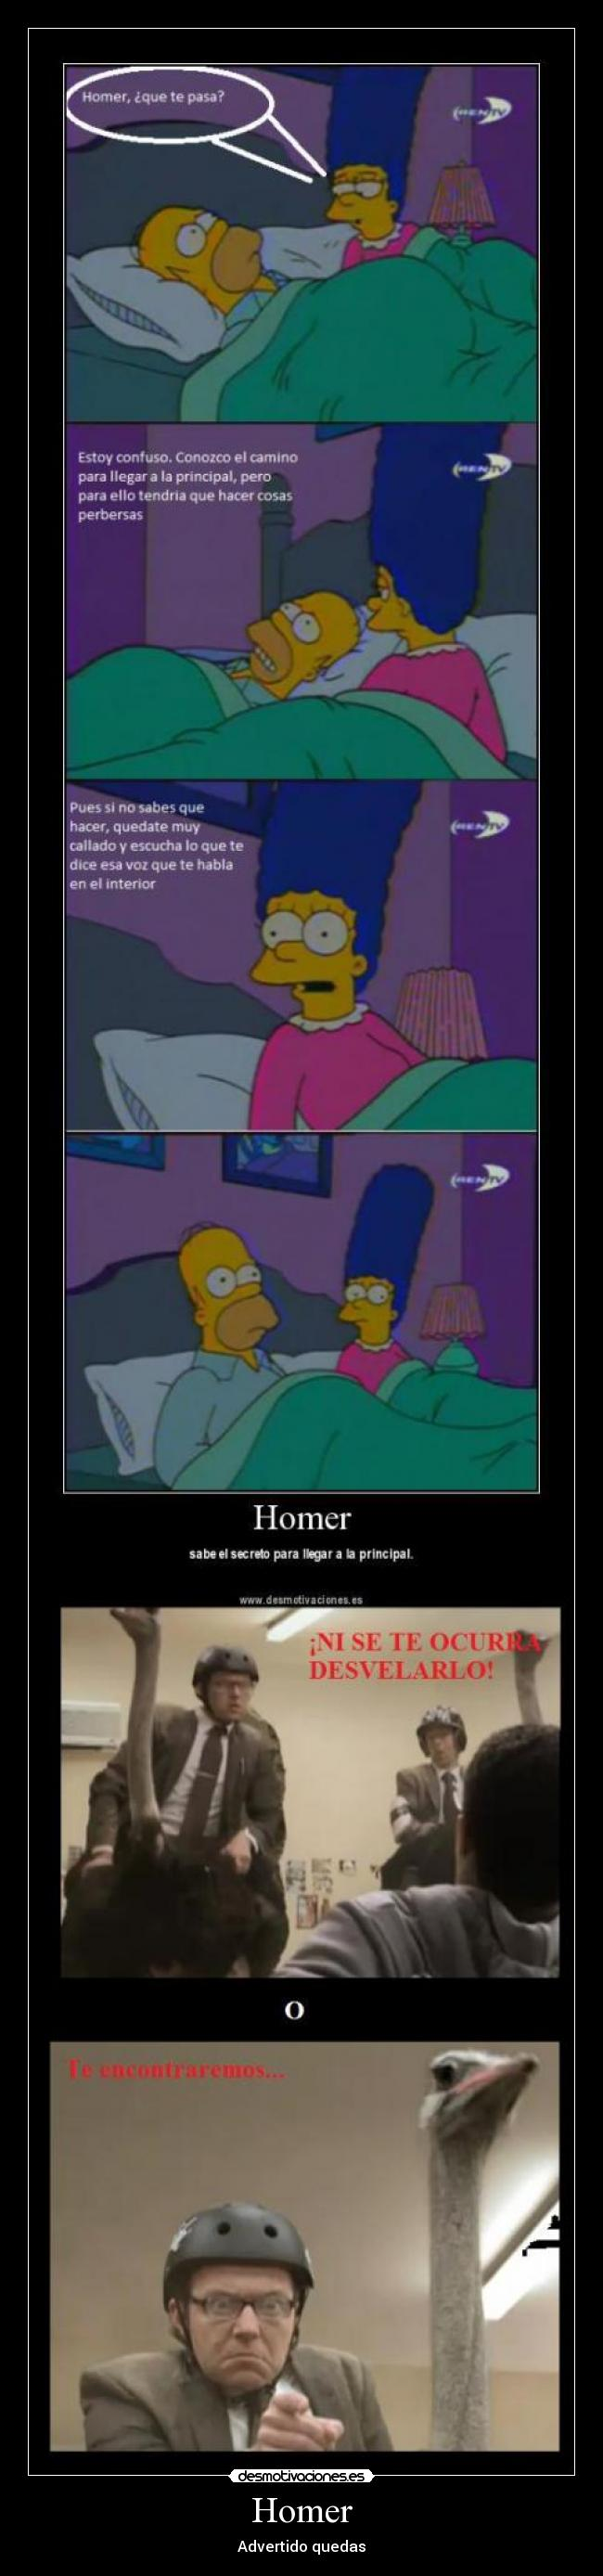 Homer - Advertido quedas